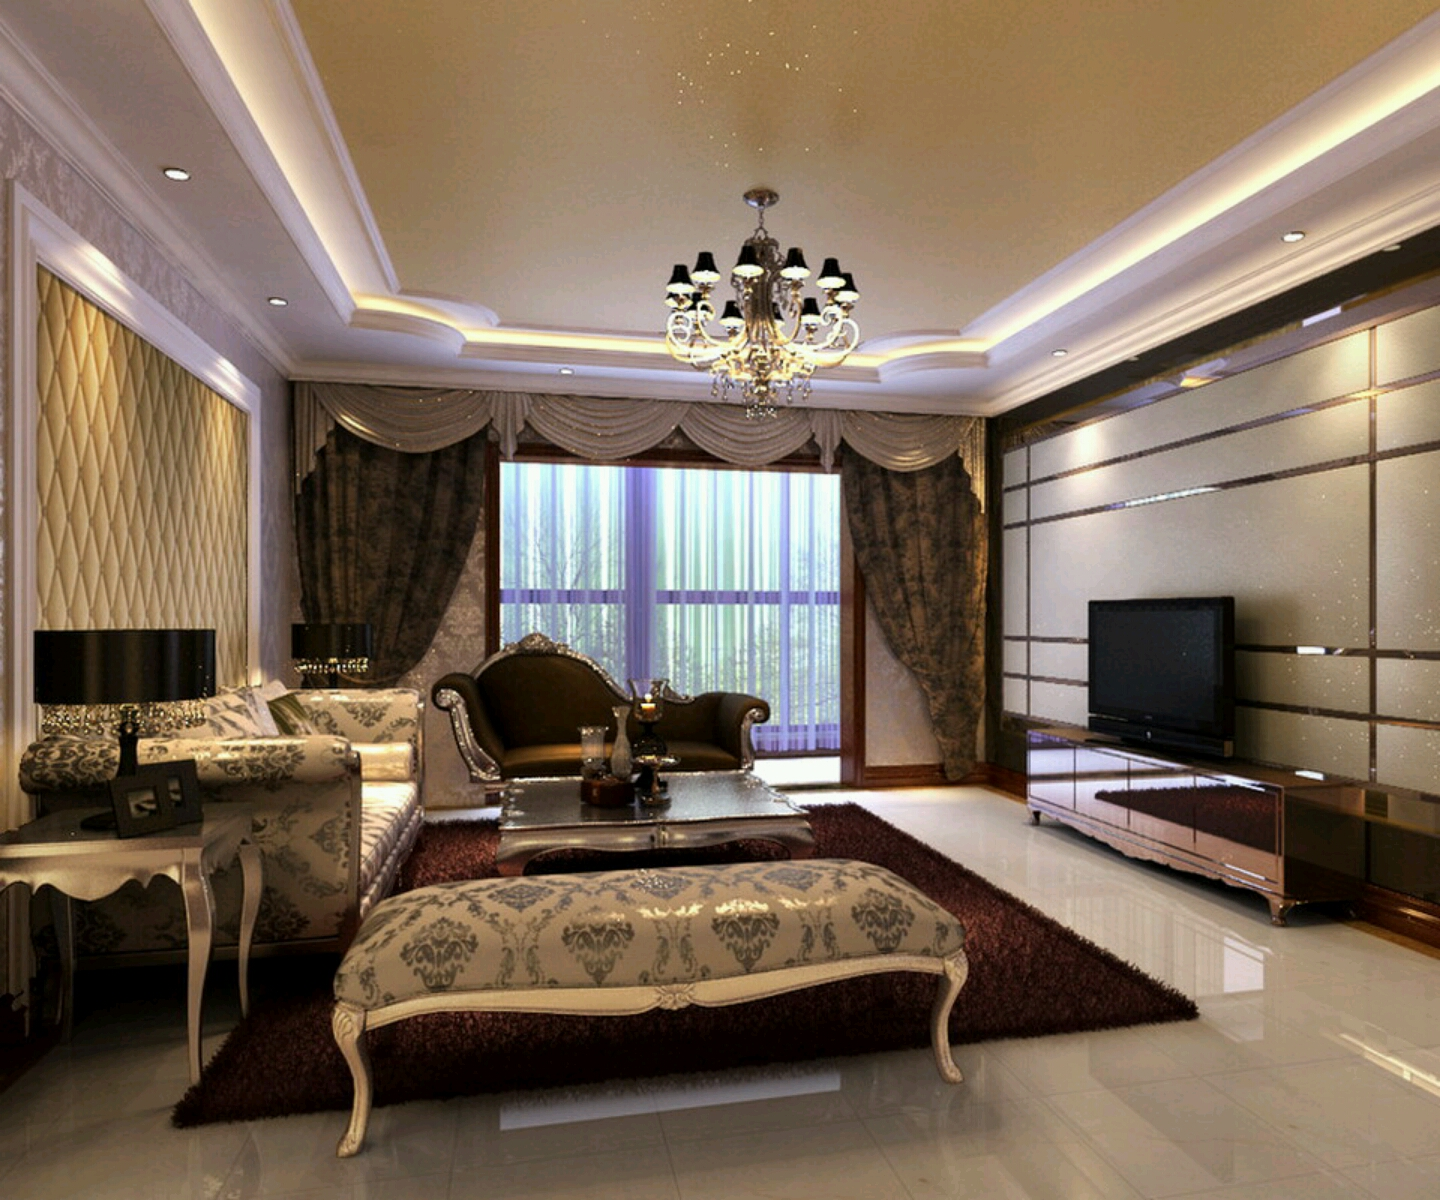 New home designs latest luxury homes interior decoration for Family room design ideas